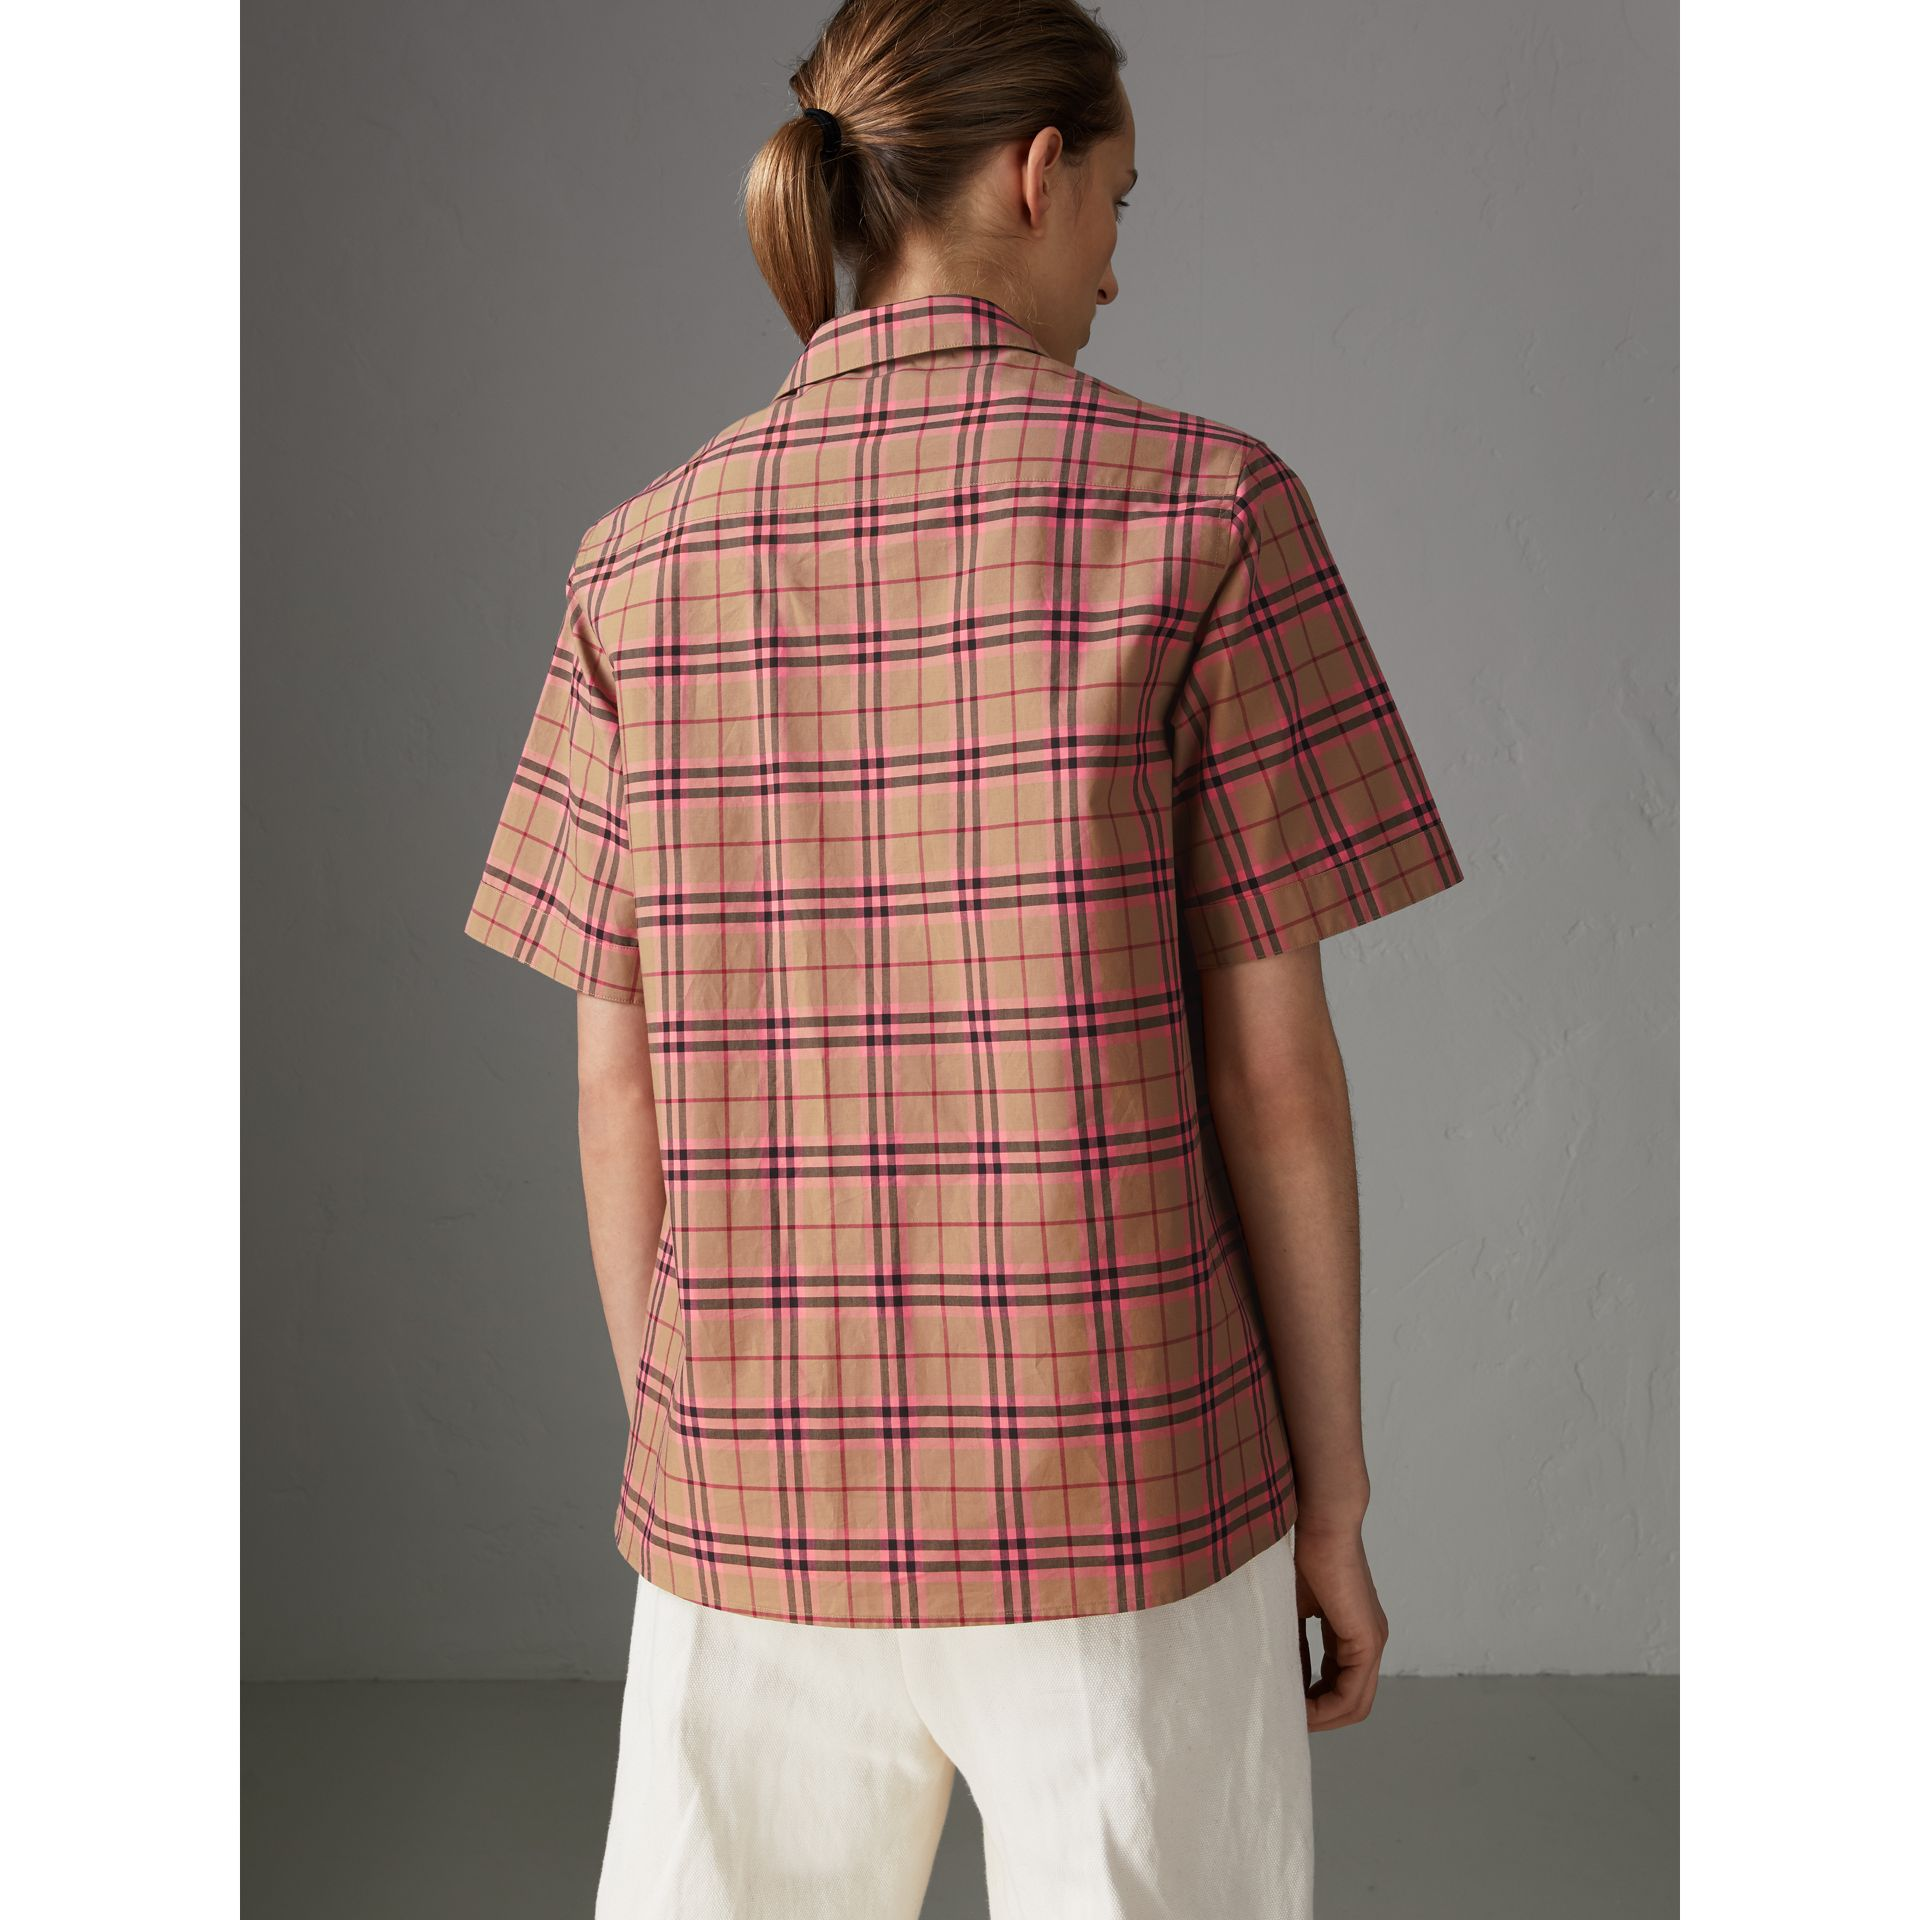 Check Cotton Short-sleeved Shirt in Pomegranate Pink - Women | Burberry - gallery image 2